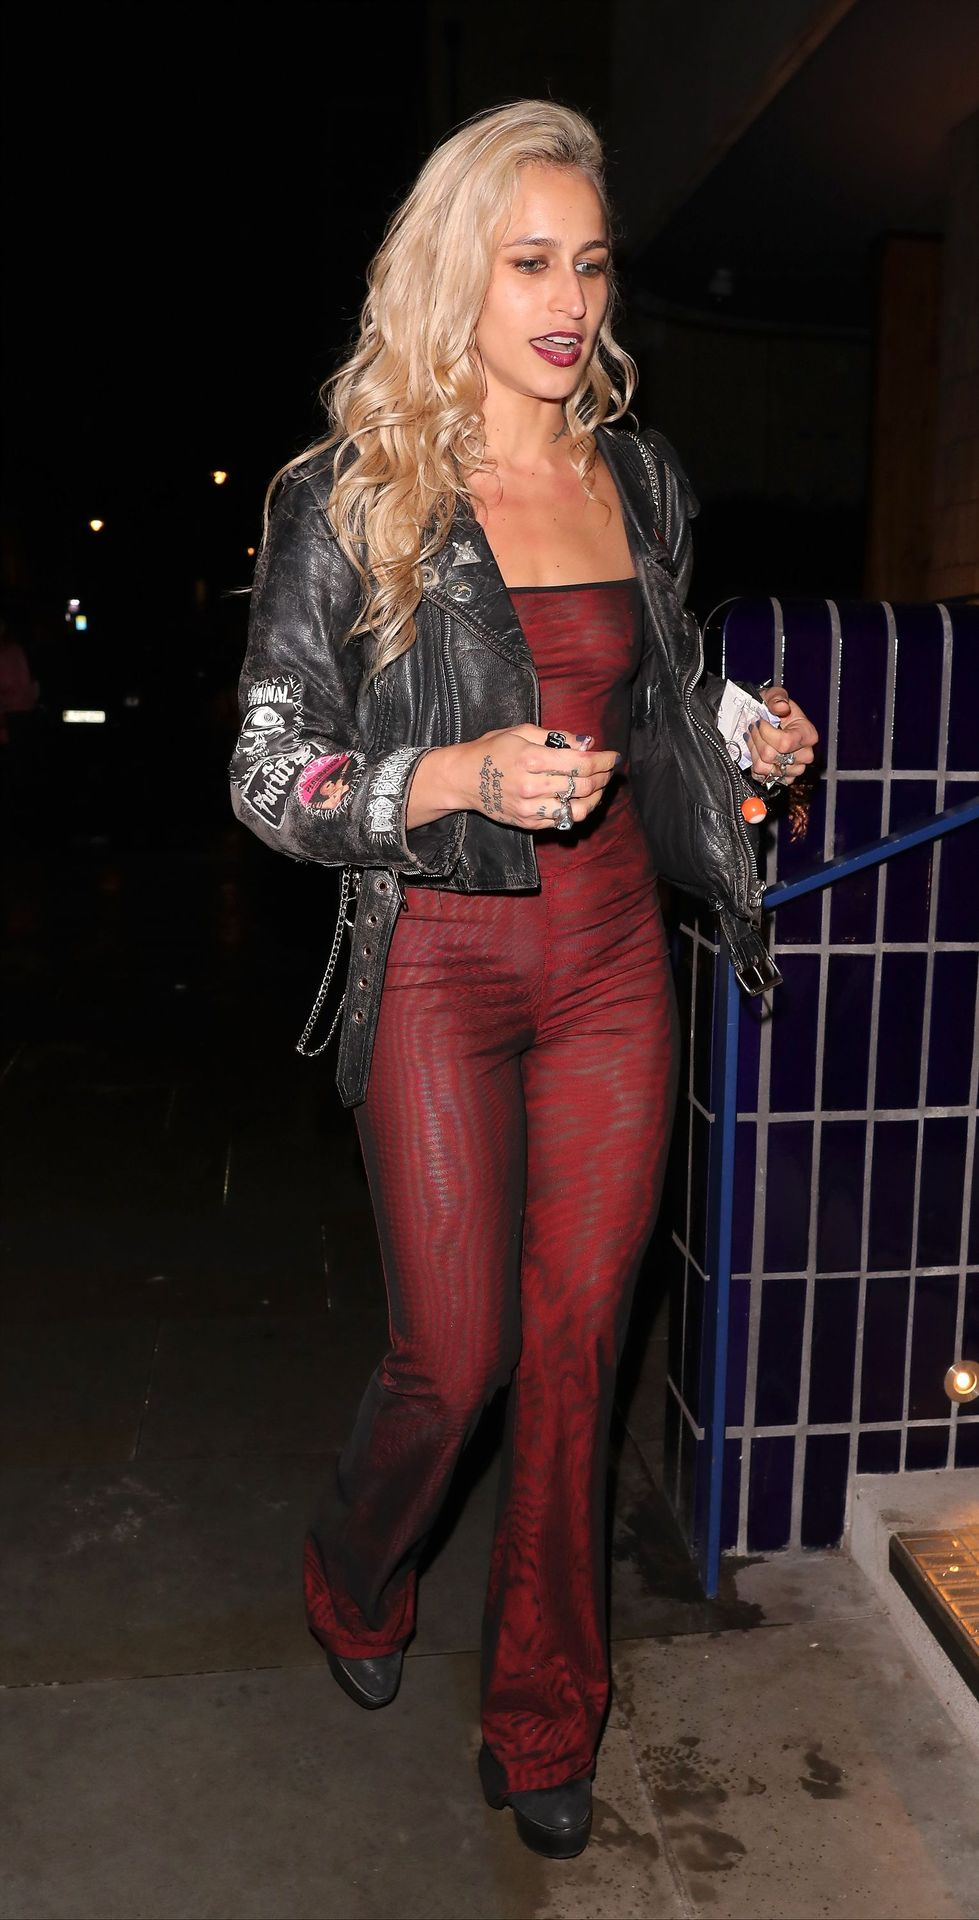 Alice Dellal See Through The Fappening Blog 11 - Alice Dellal Shows Her Tits at the NME Awards After Party (25 Photos)